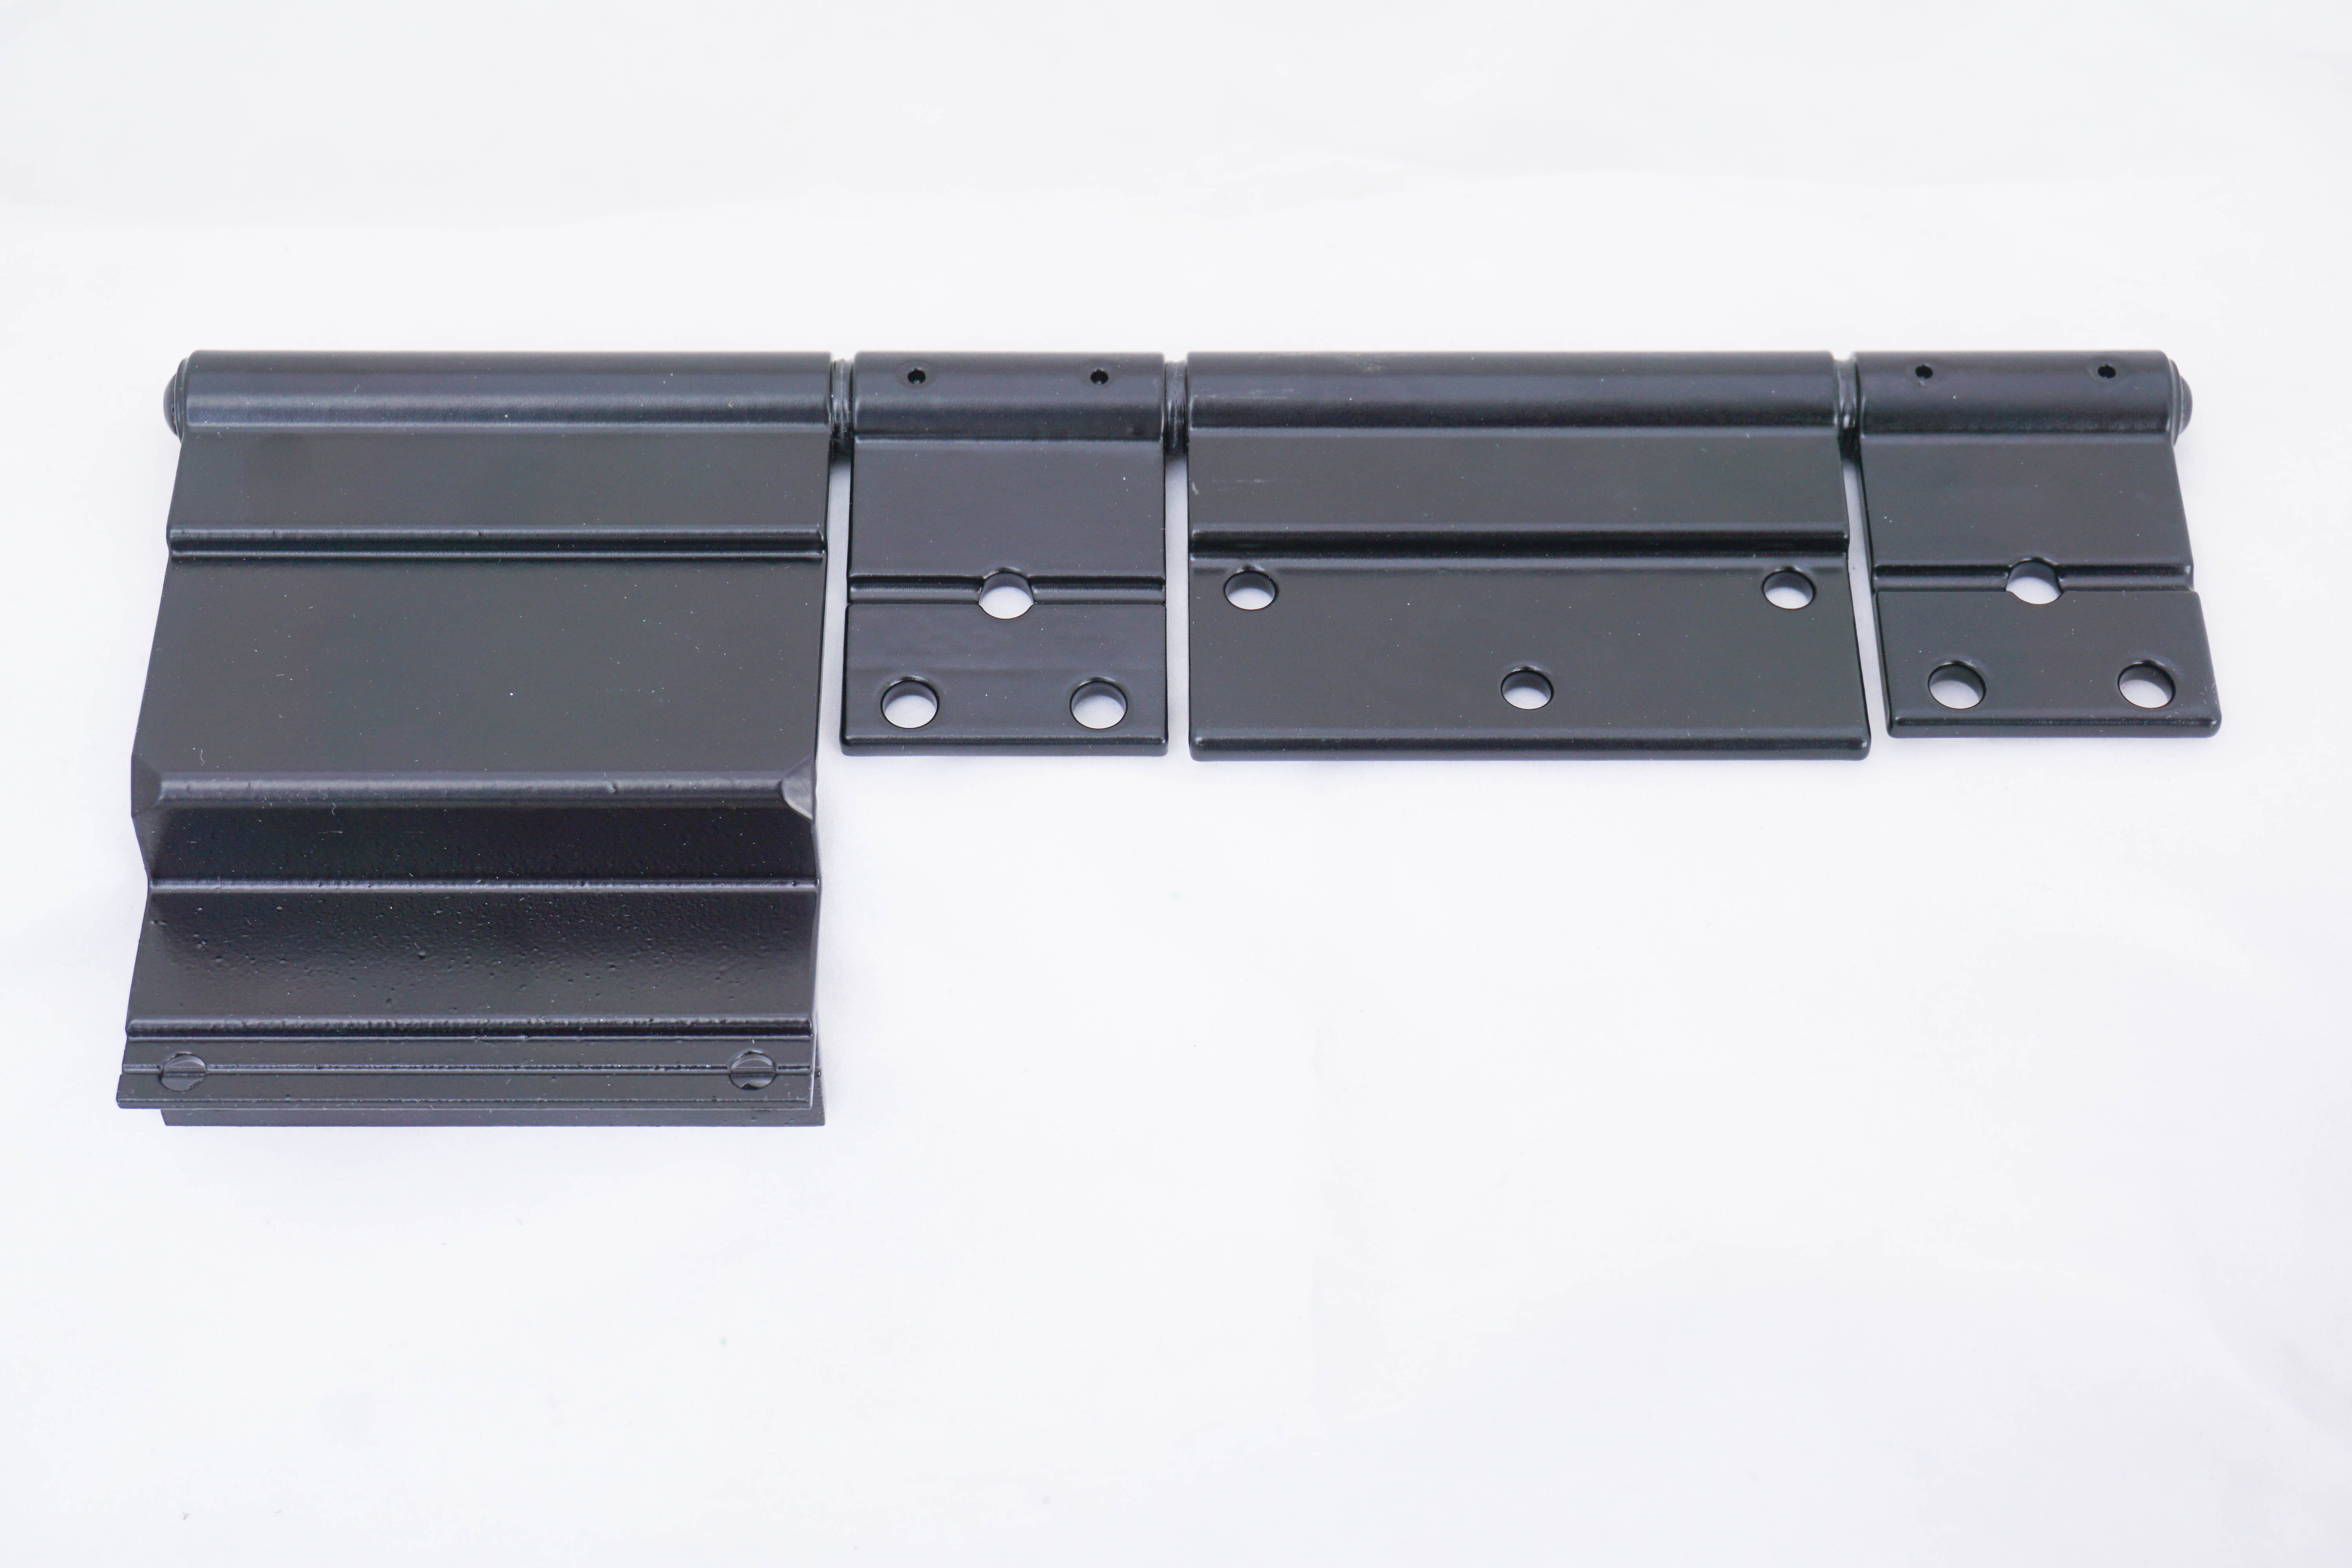 Atwood Entry Doors Arched Steel Doors And Windows With Matching Atwood Entry Door Sc1stfleetwood Rv Hinges & Atwood Door Hinge u0026 Heater Hinge Door Perfect Images Are Great pezcame.com